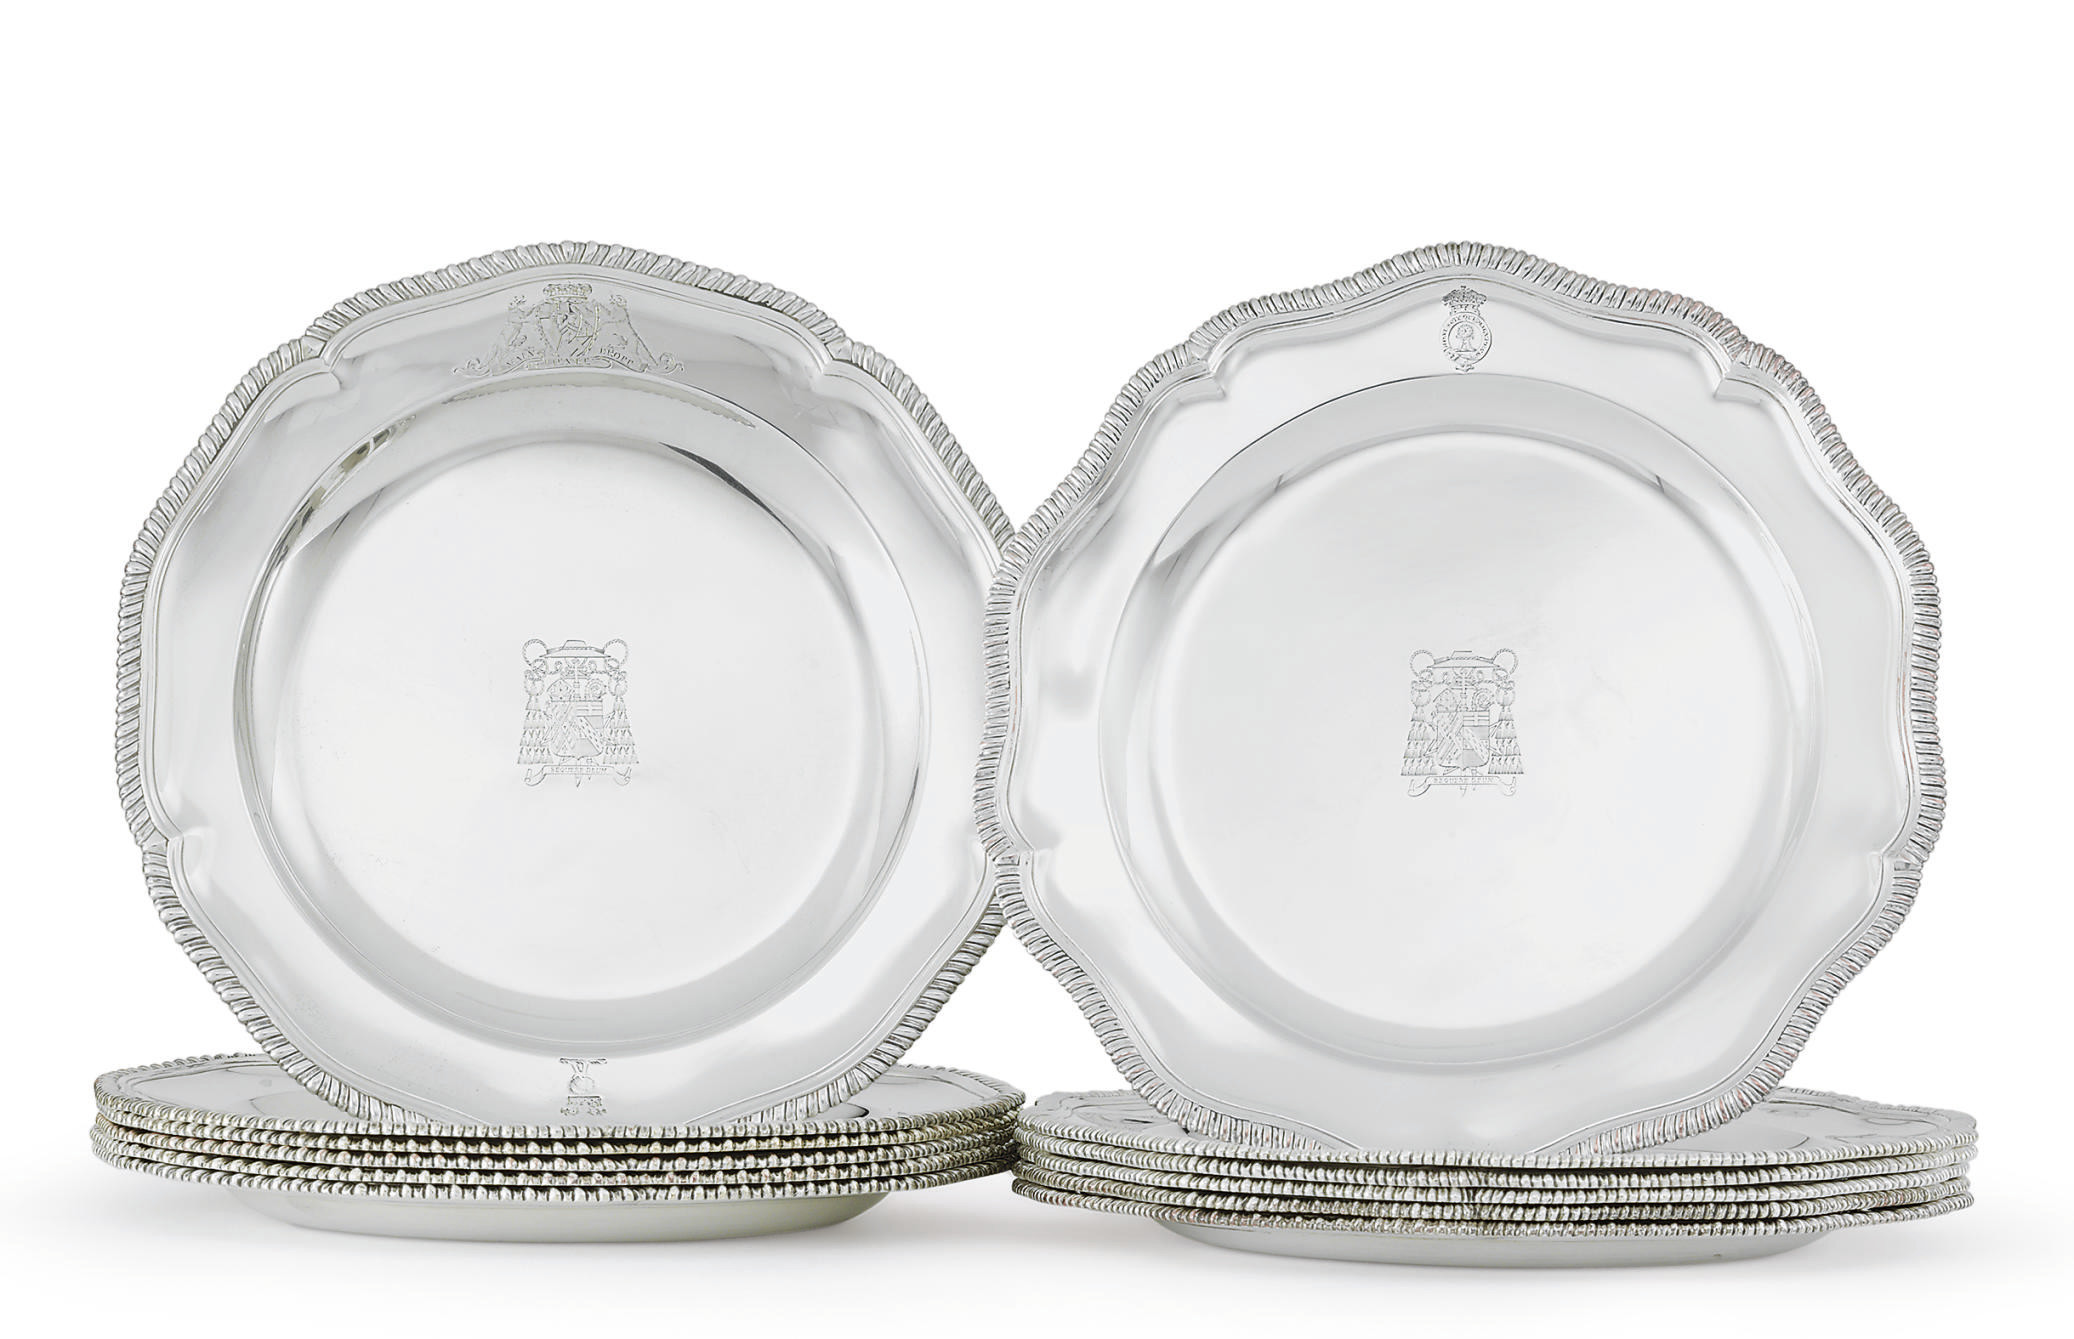 AN ASSEMBLED SET OF TWELVE GEORGE III ENGLISH AND IRISH SILVER DINNER PLATES